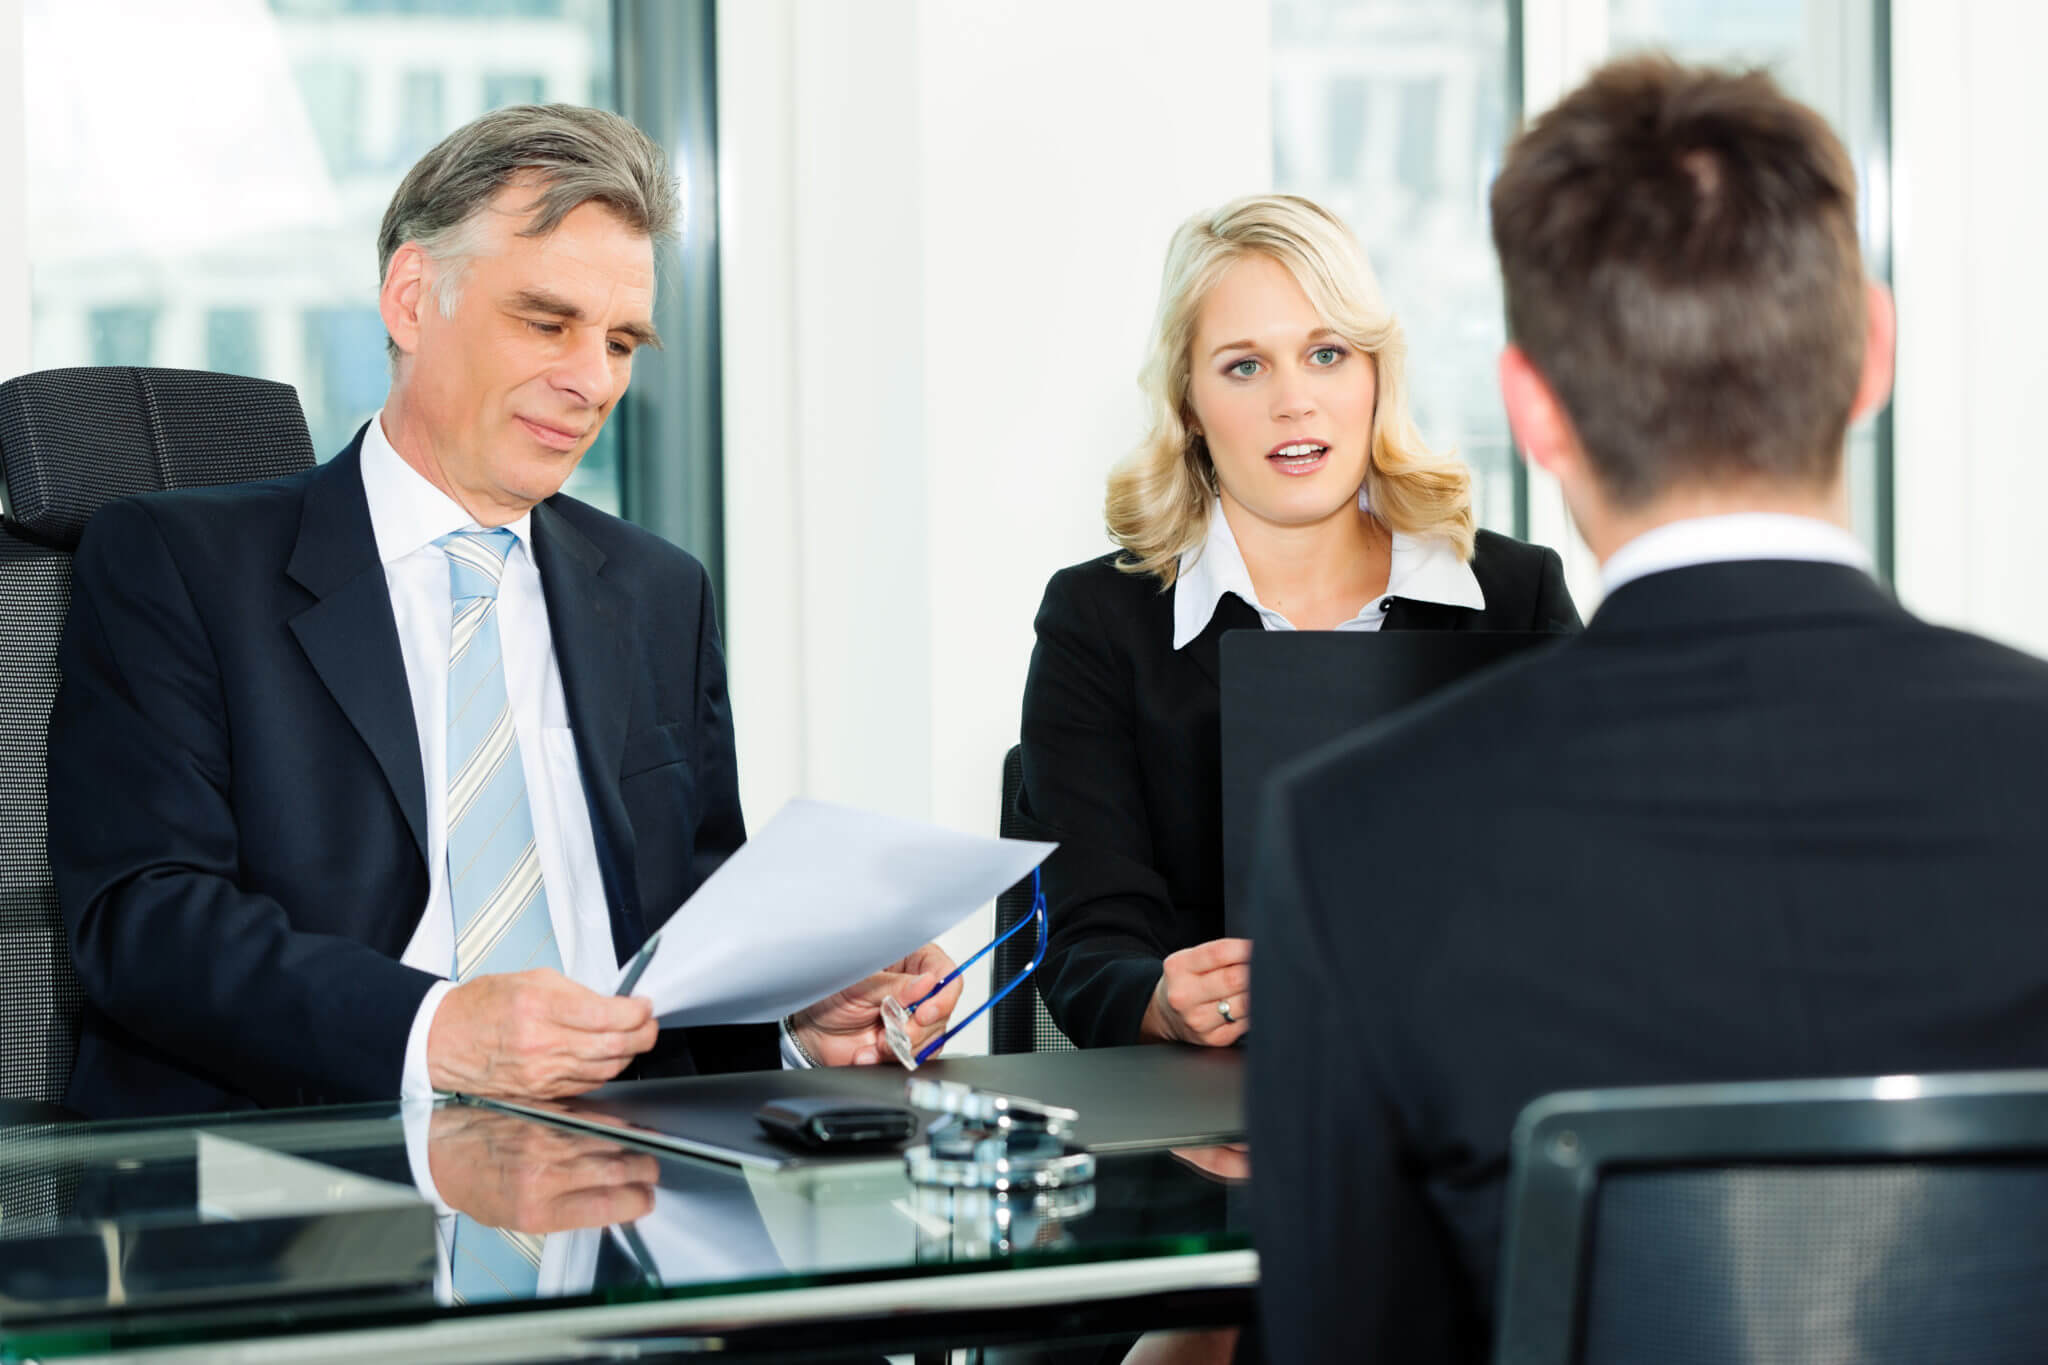 interview questions answers avoid interview mistakes interview tips interview questions answers